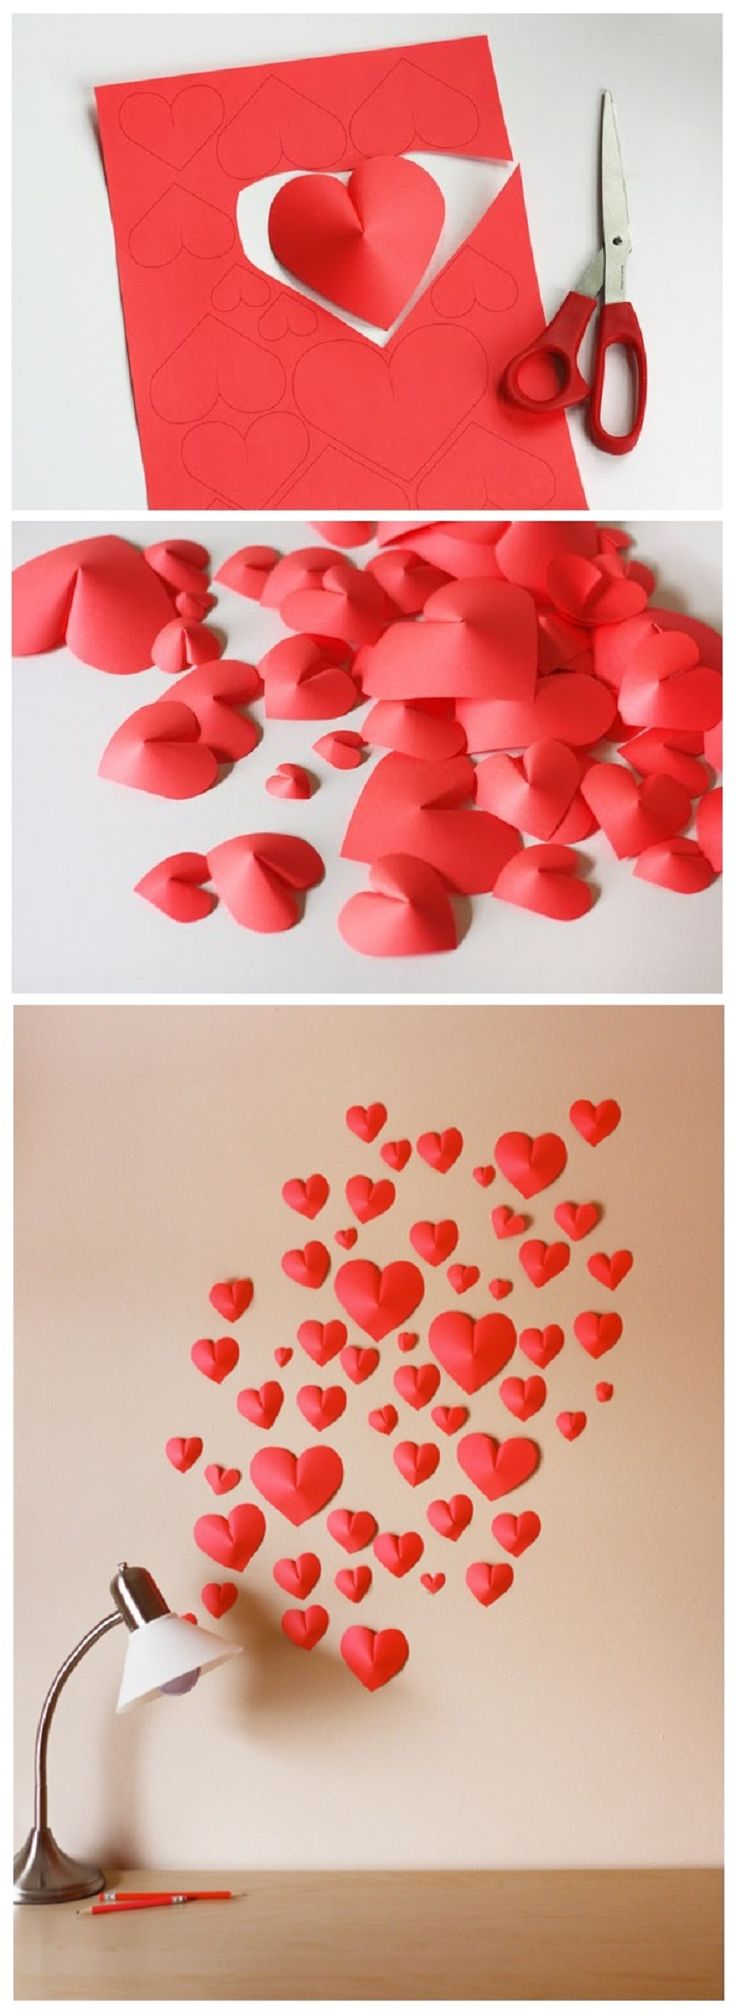 Diy projects for valentine s day pretty designs for Hearts decorations home